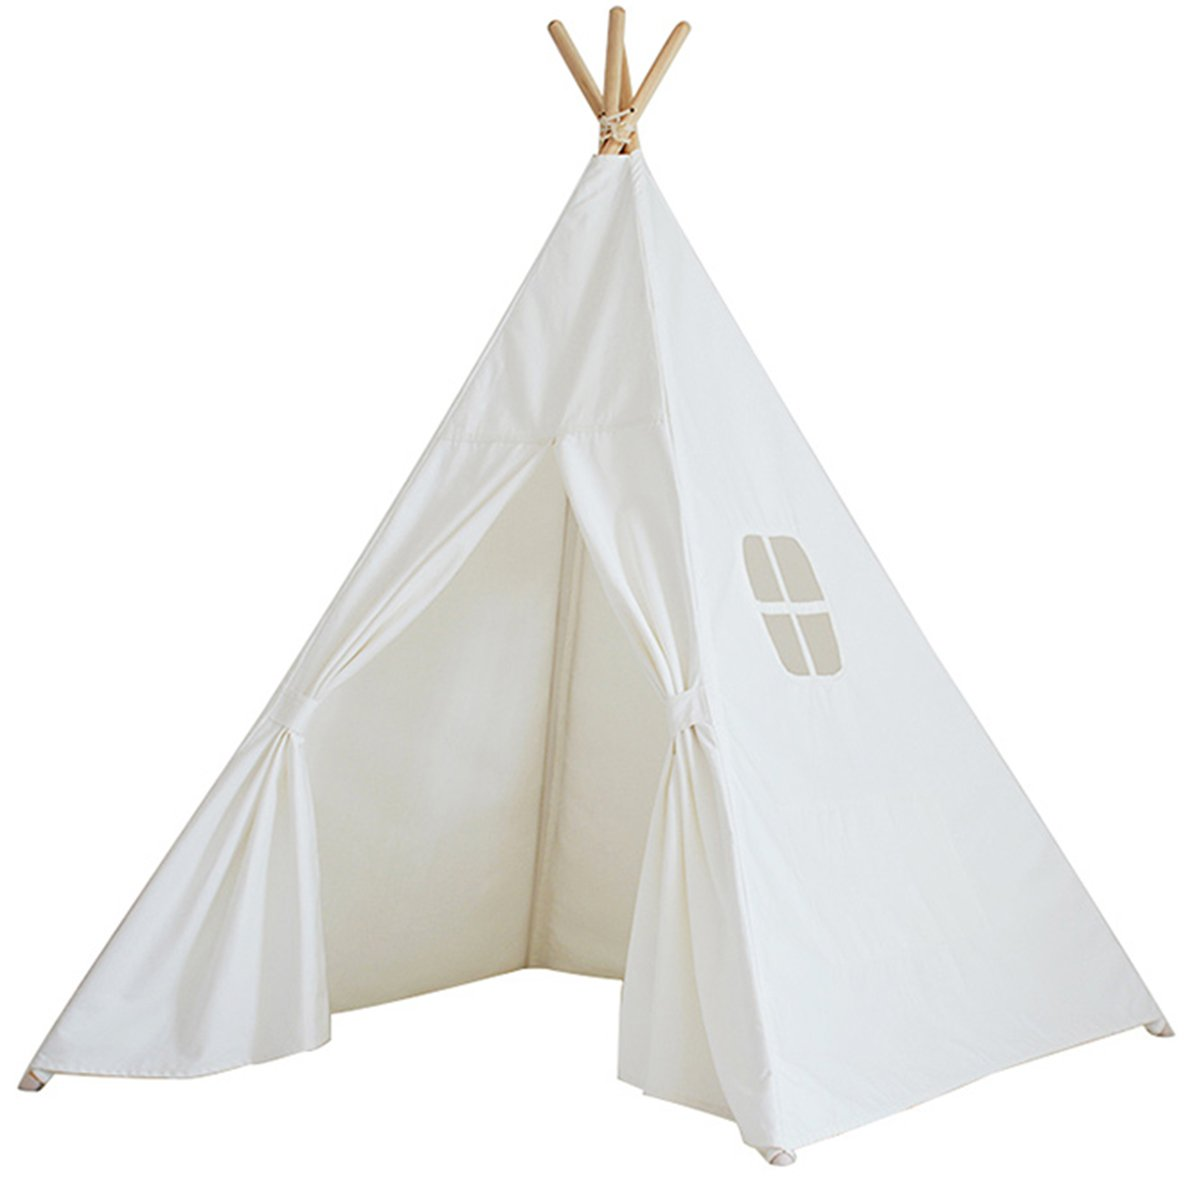 kindertipi indianerzelt tipi 100 baumwolle zelt stoff kinder spielzelt spielhaus wigwam. Black Bedroom Furniture Sets. Home Design Ideas